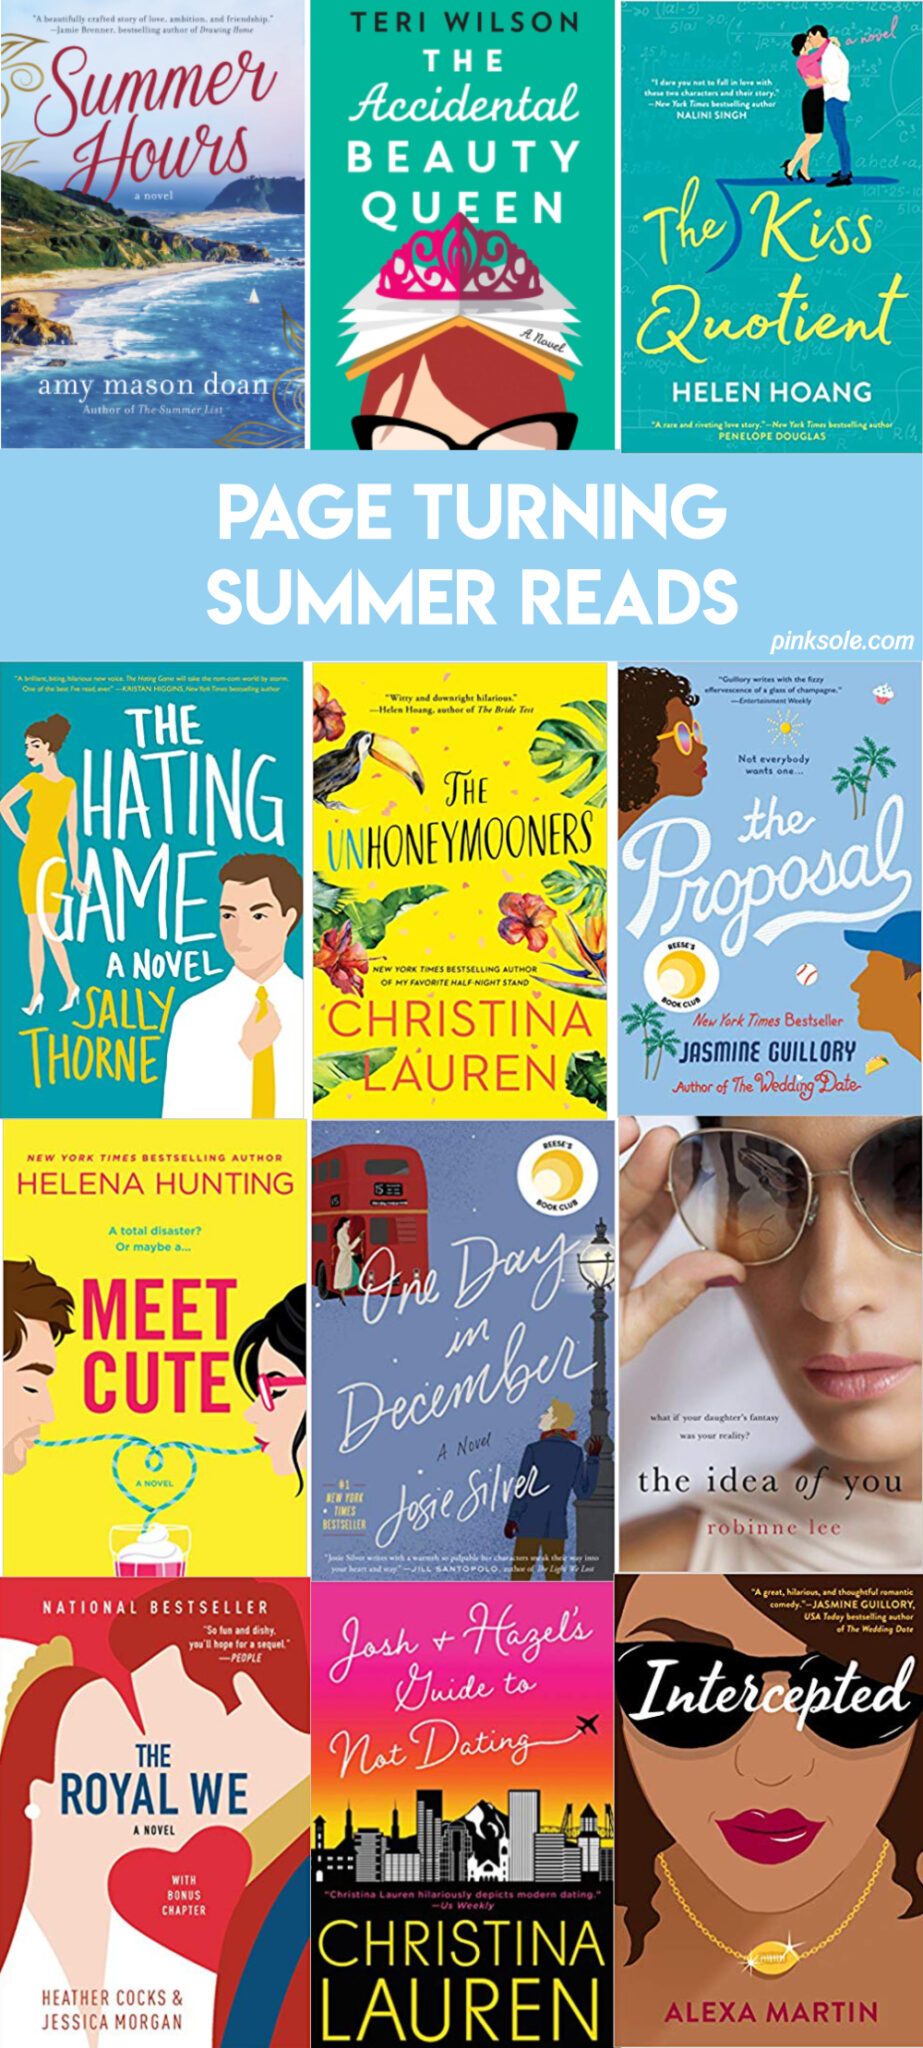 Page Turning Summer Reads Book Club Books Beach Reading Reading